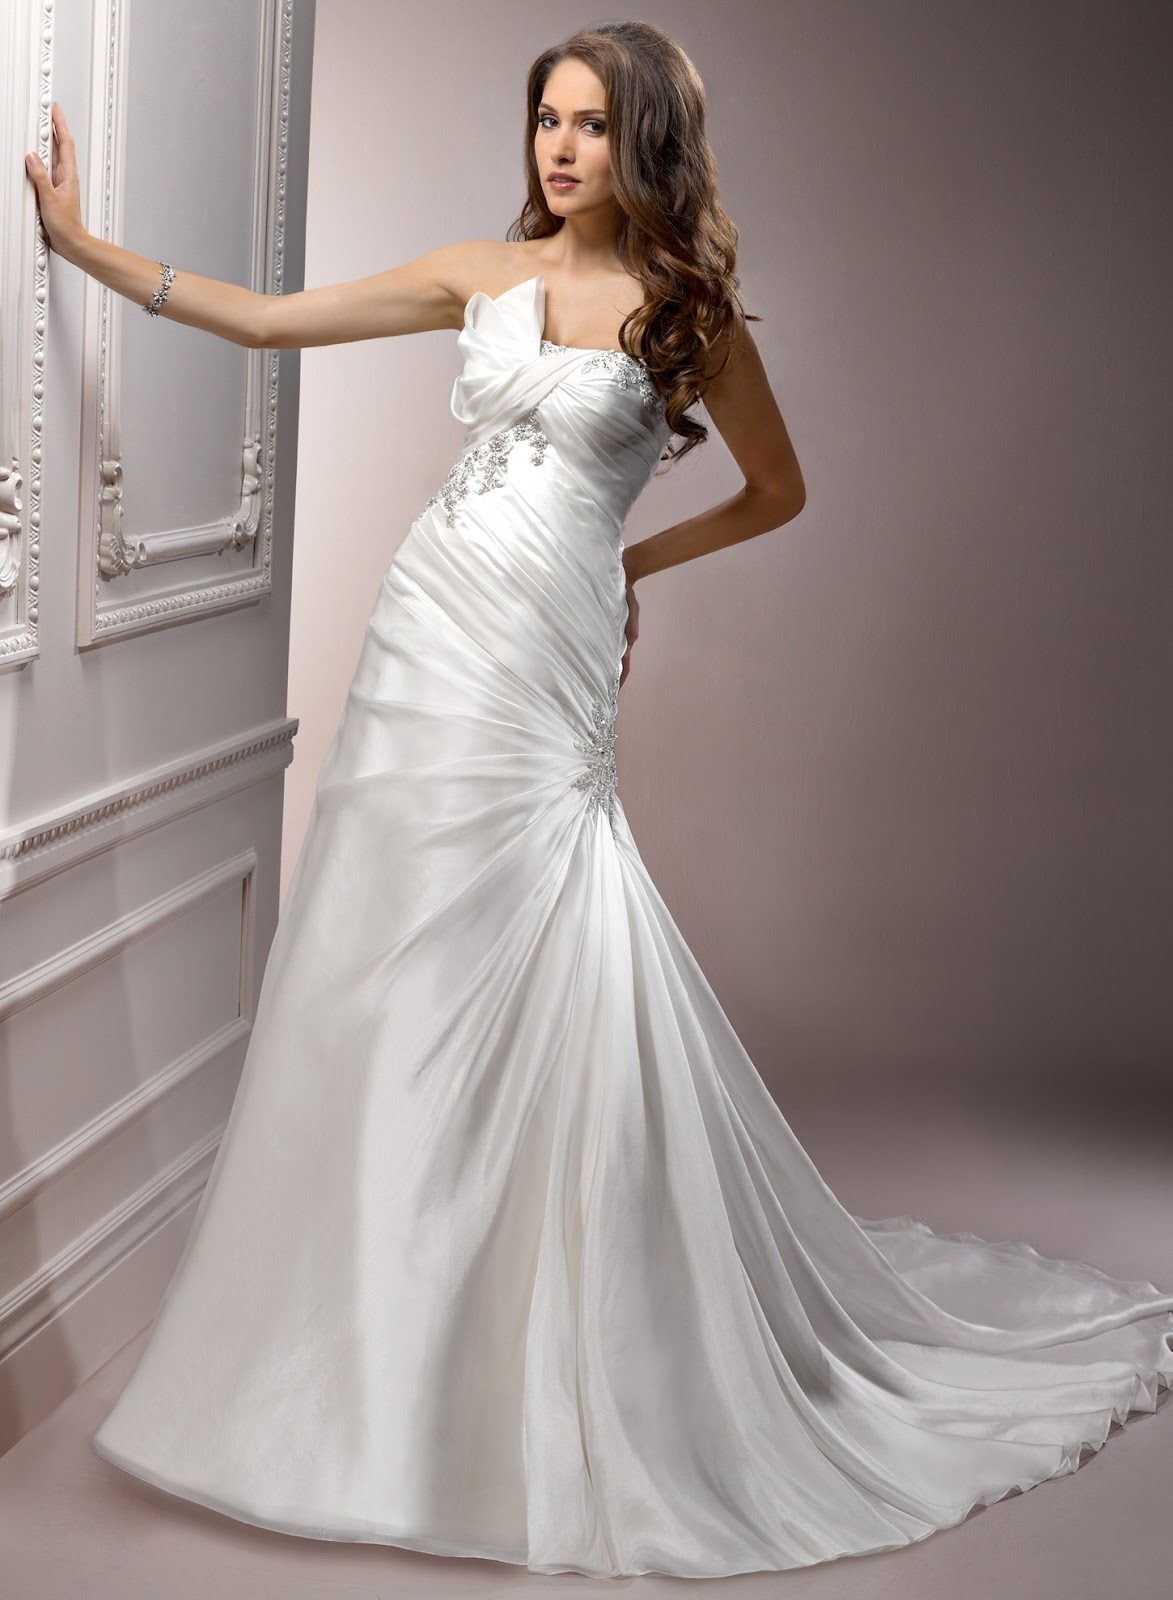 wedding dresses cold climates: Wedding Dresses Online